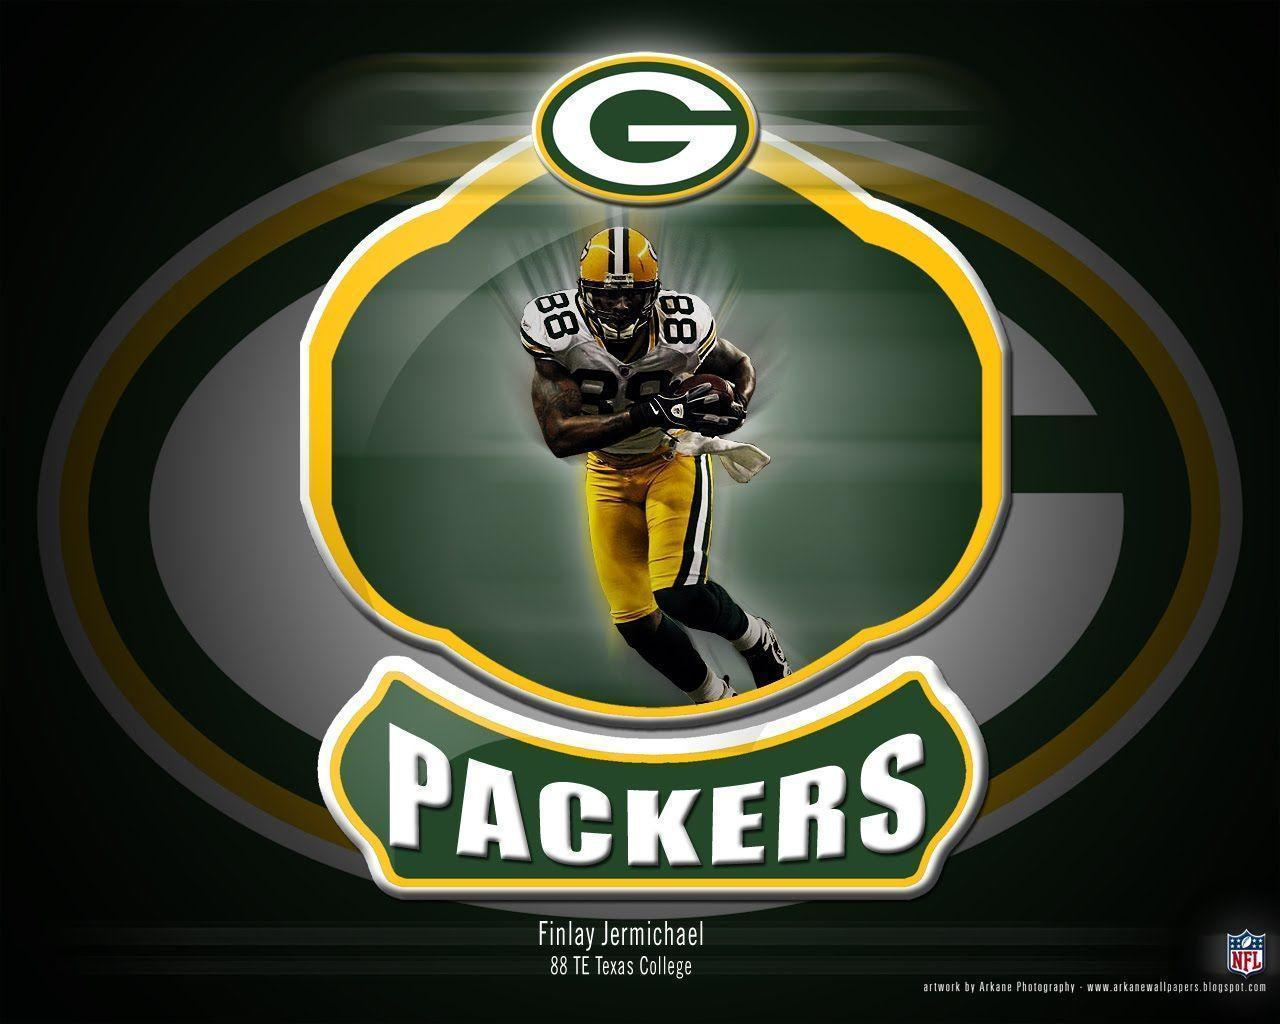 Computers, Green bay packers wallpaper and Bays on Pinterest